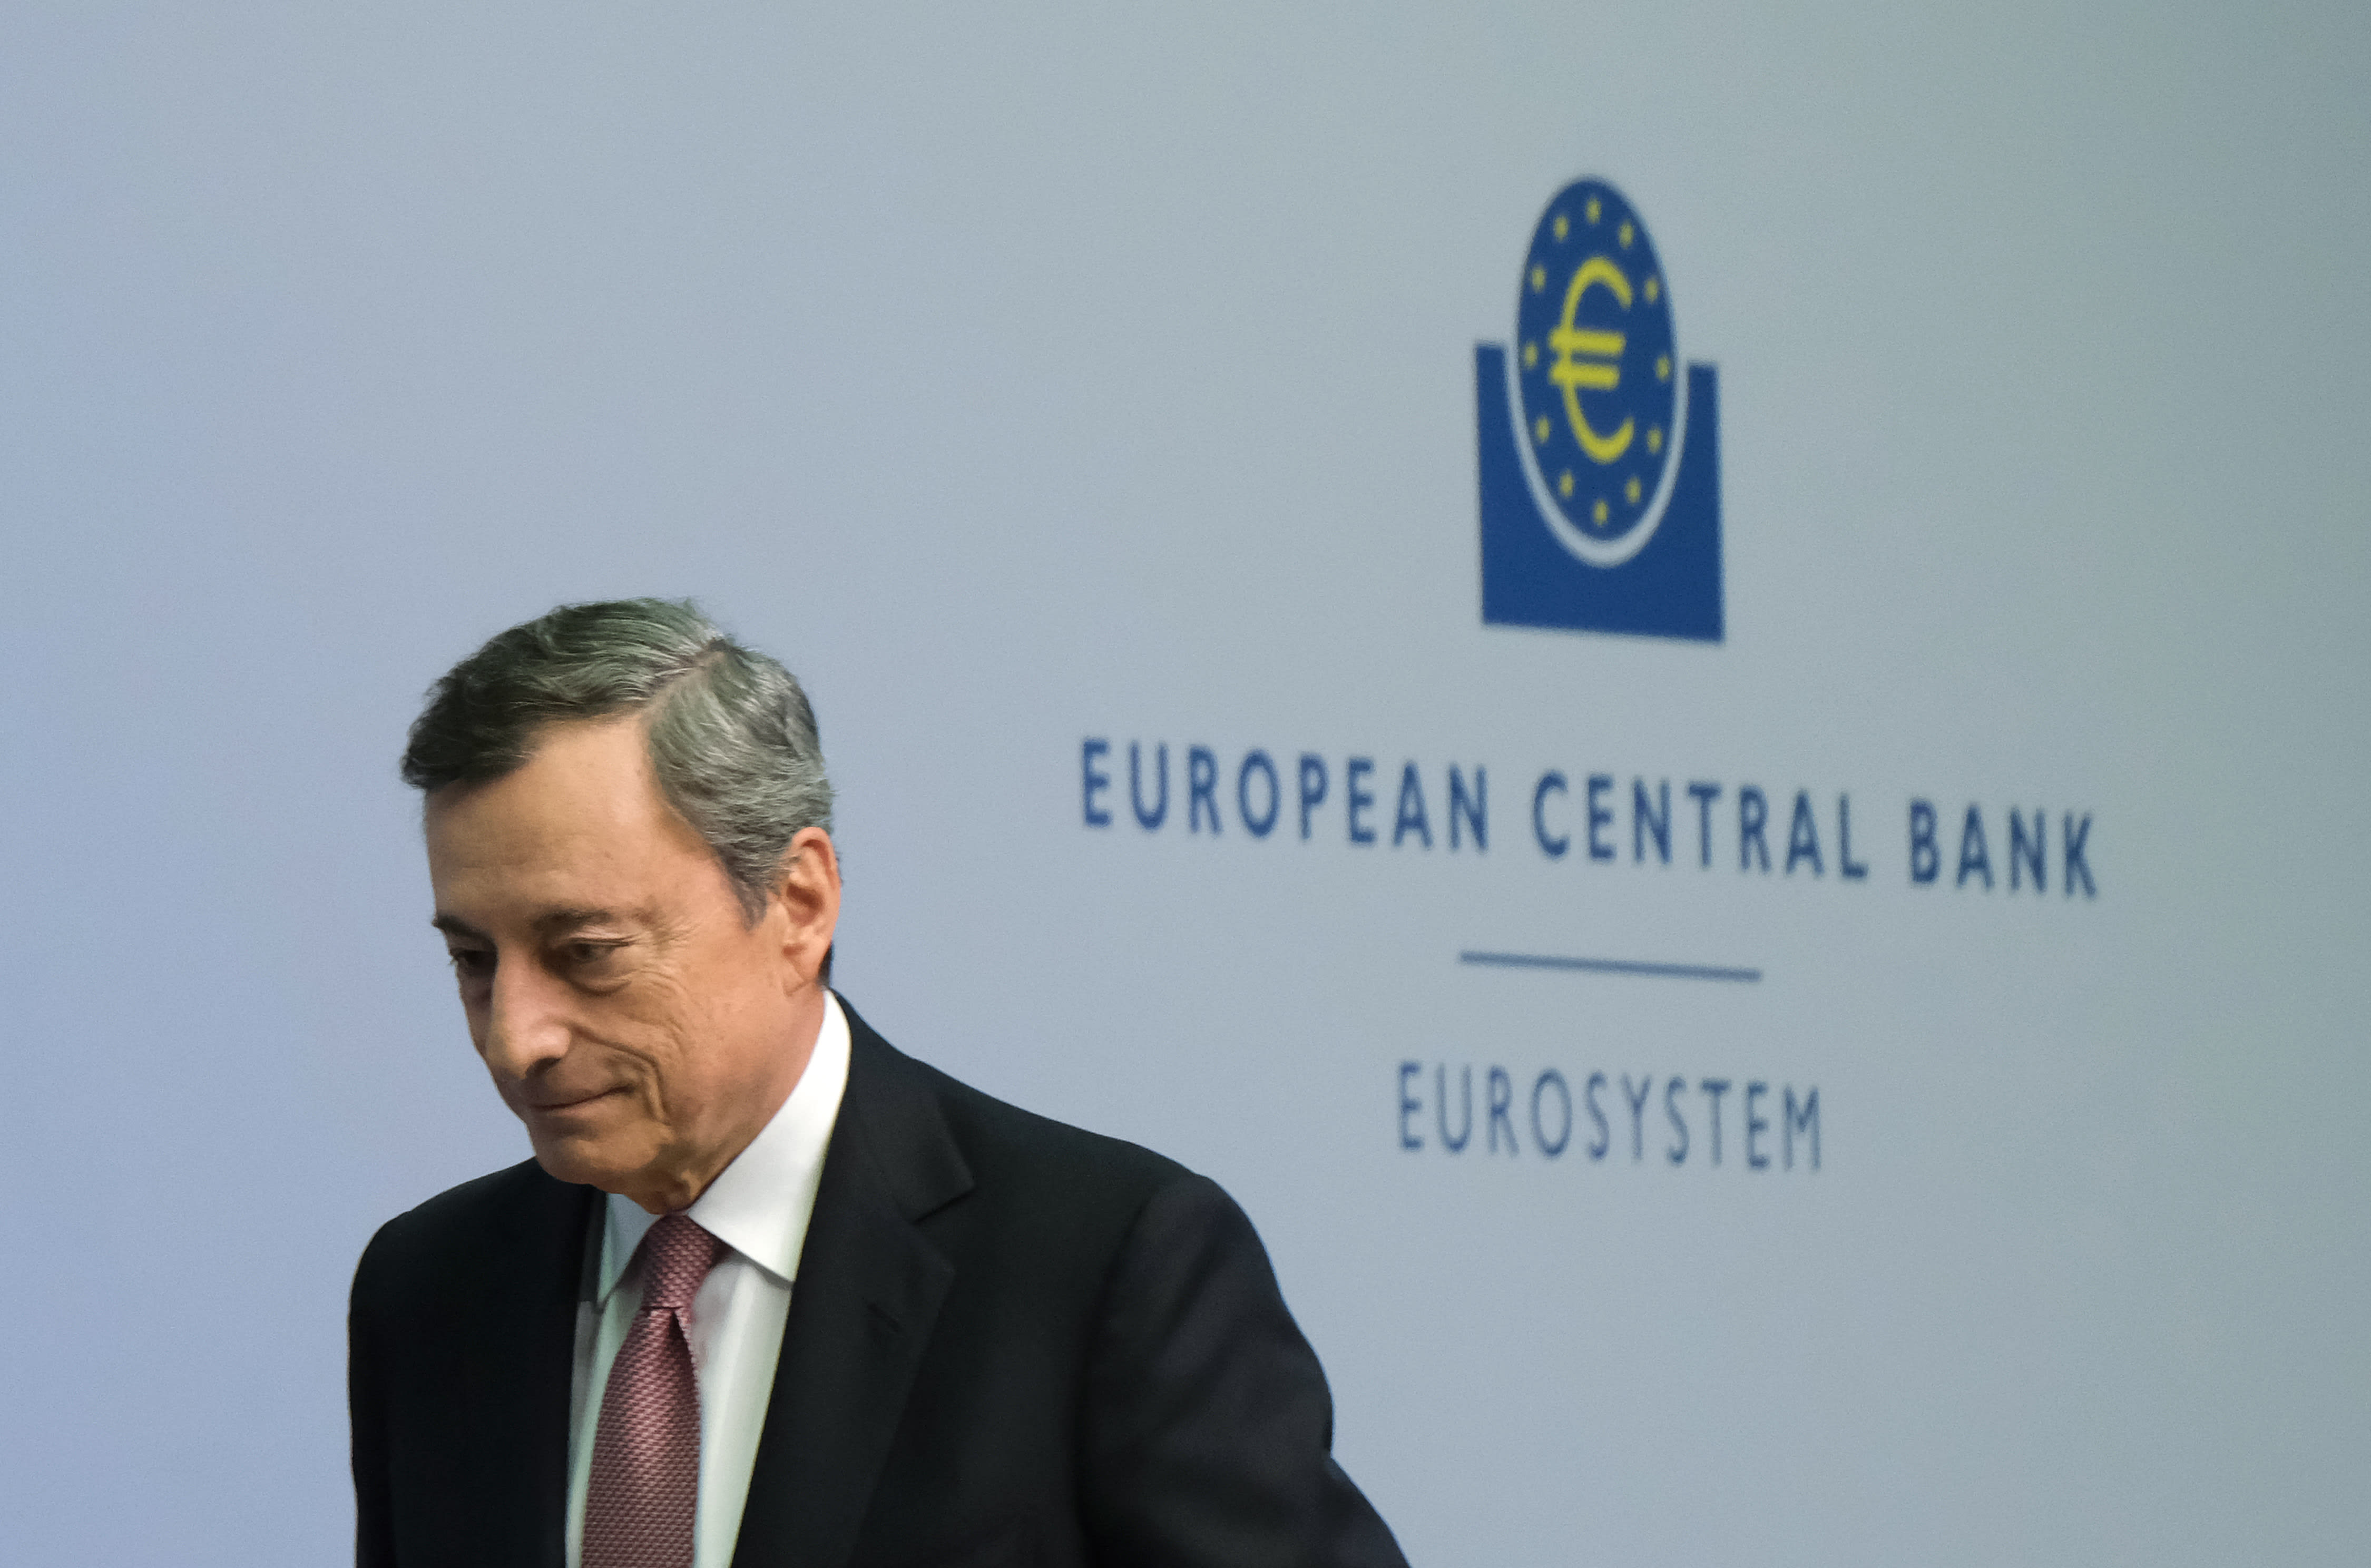 EIU sees risk of bank failure in Europe that could lead to recession